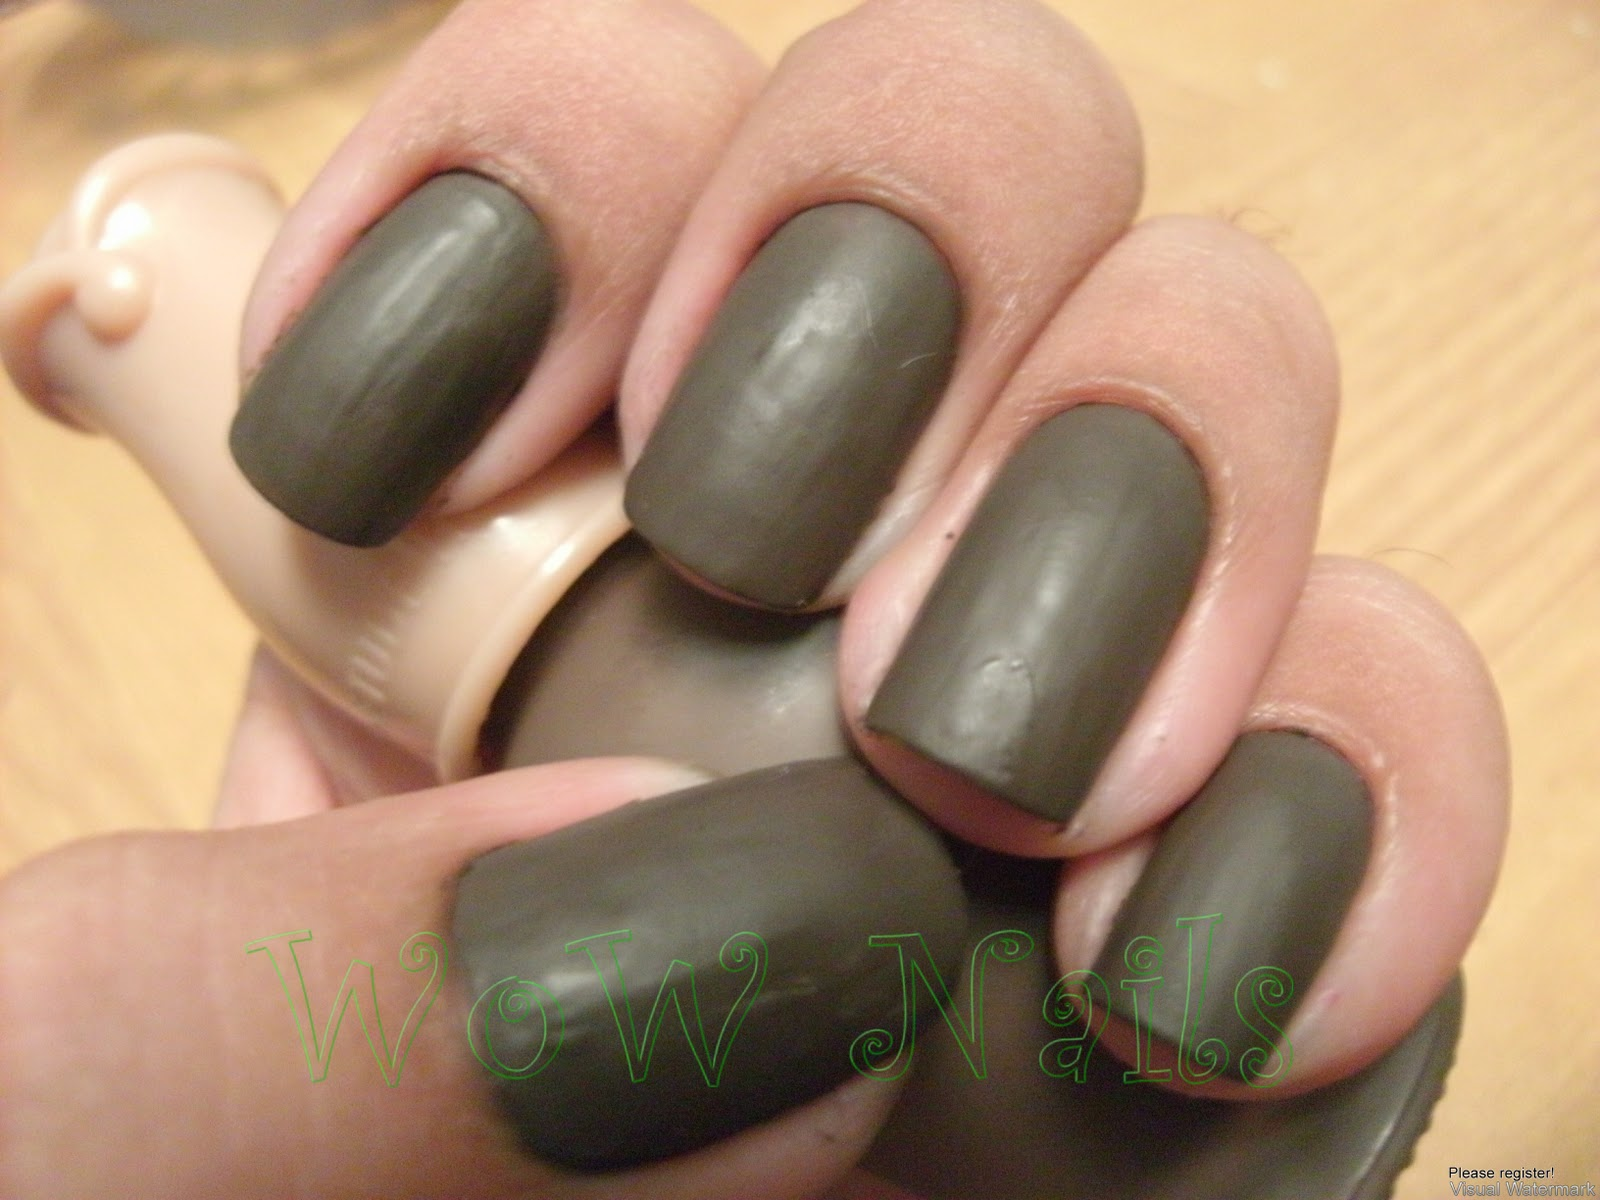 WoW Nails: Etude House Petite Darling Nails Matte Dark Chocolate